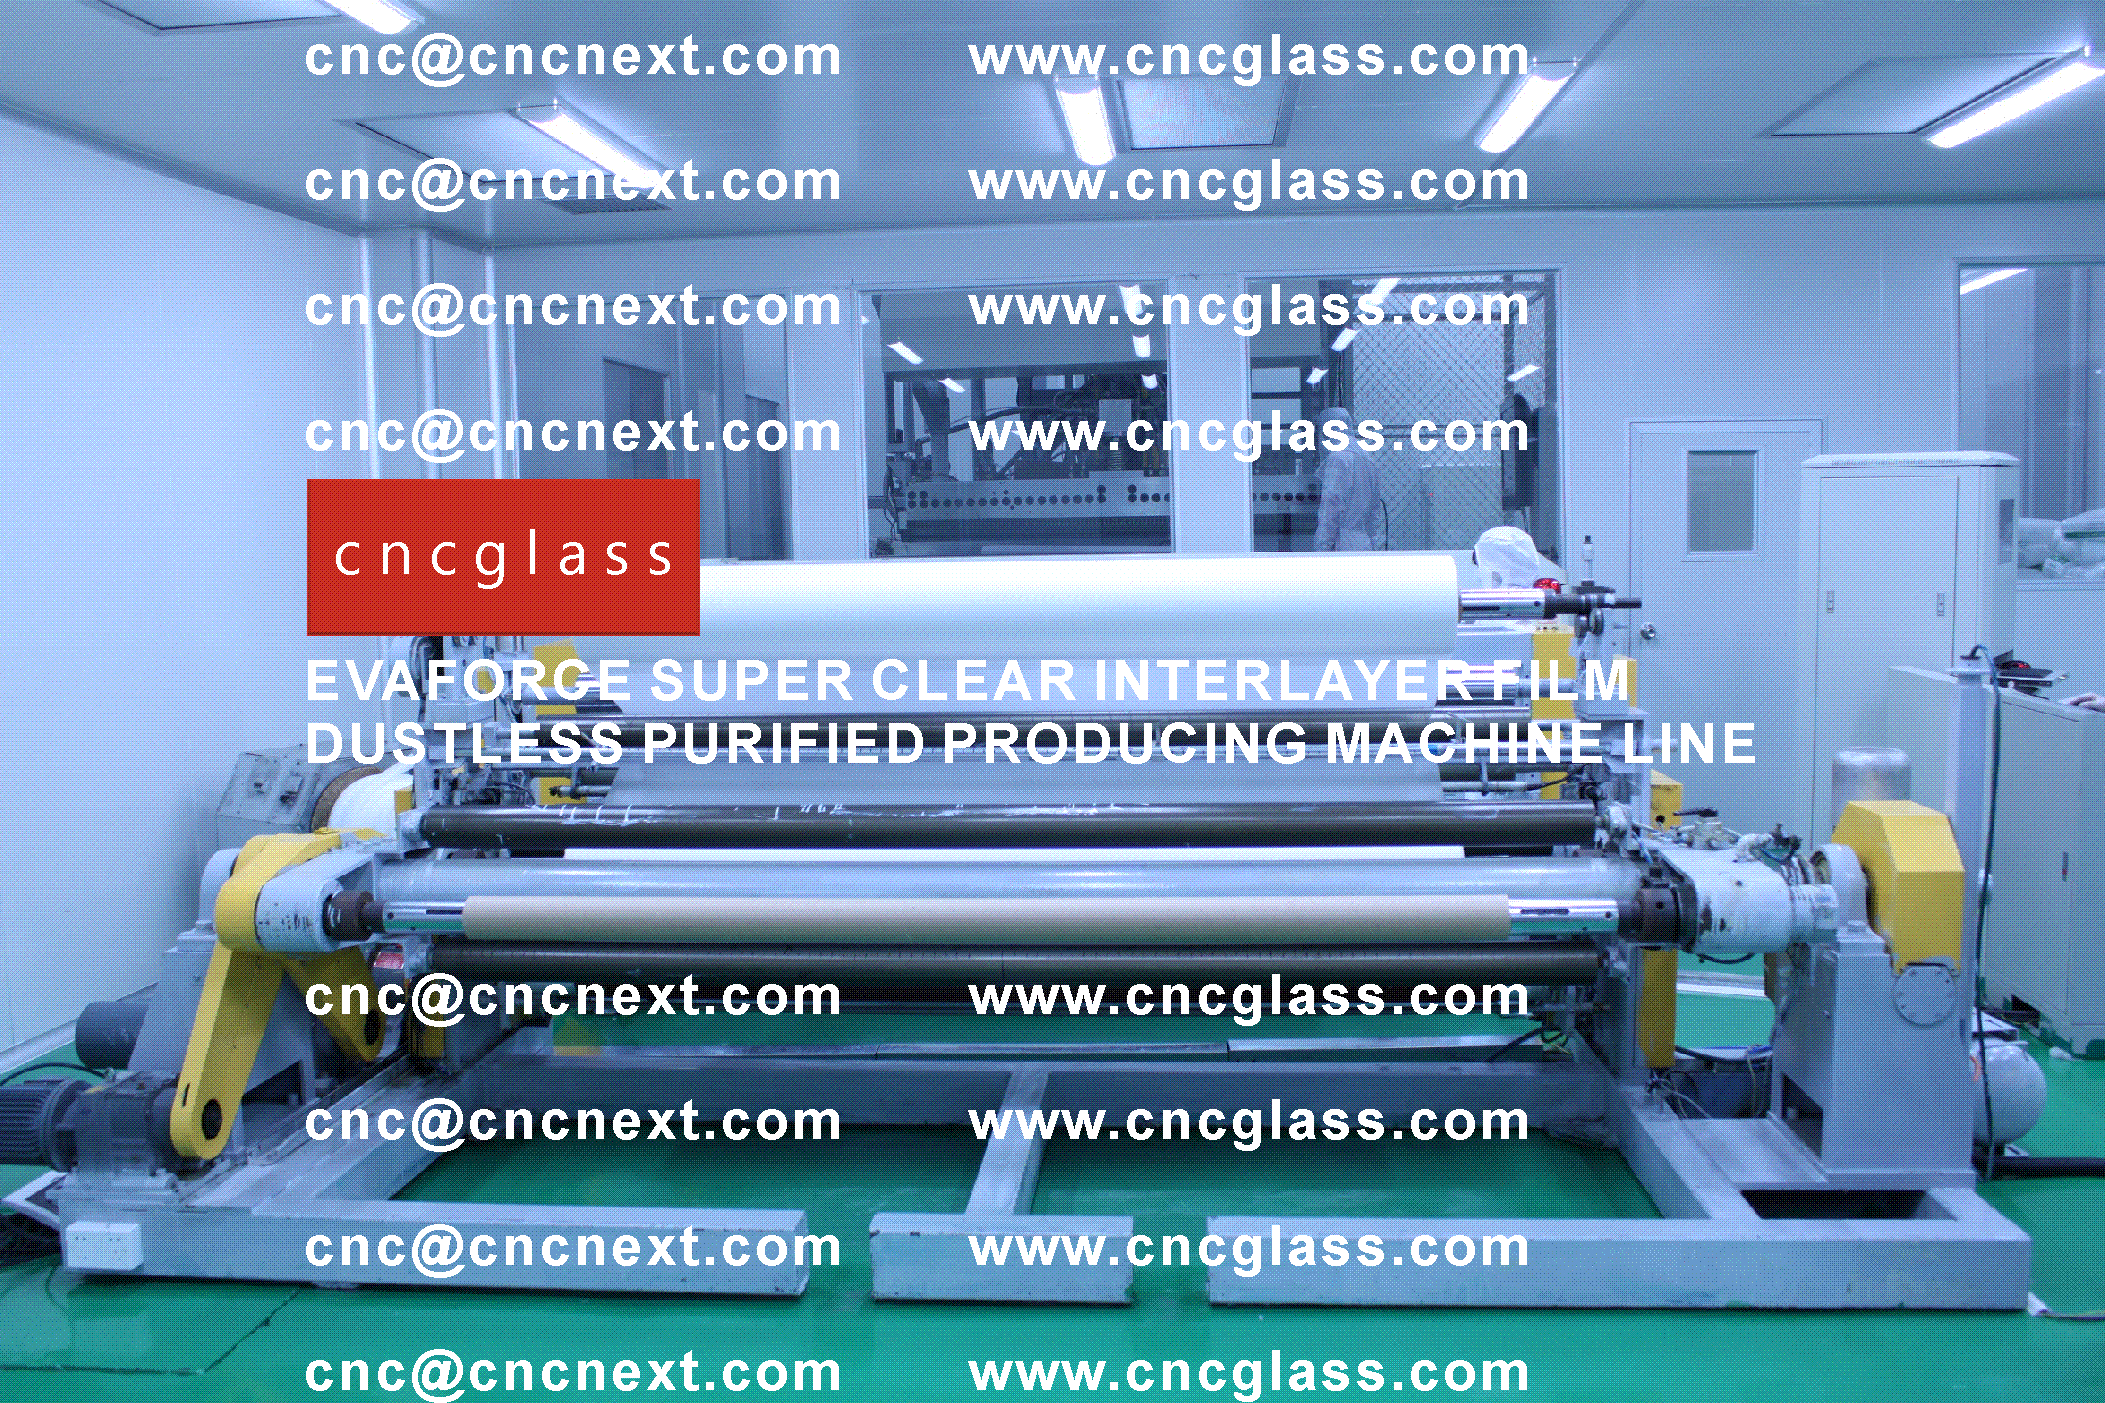 002 EVAFORCE SUPER CLEAR INTERLAYER FILM PRODUCING MACHINE LINE